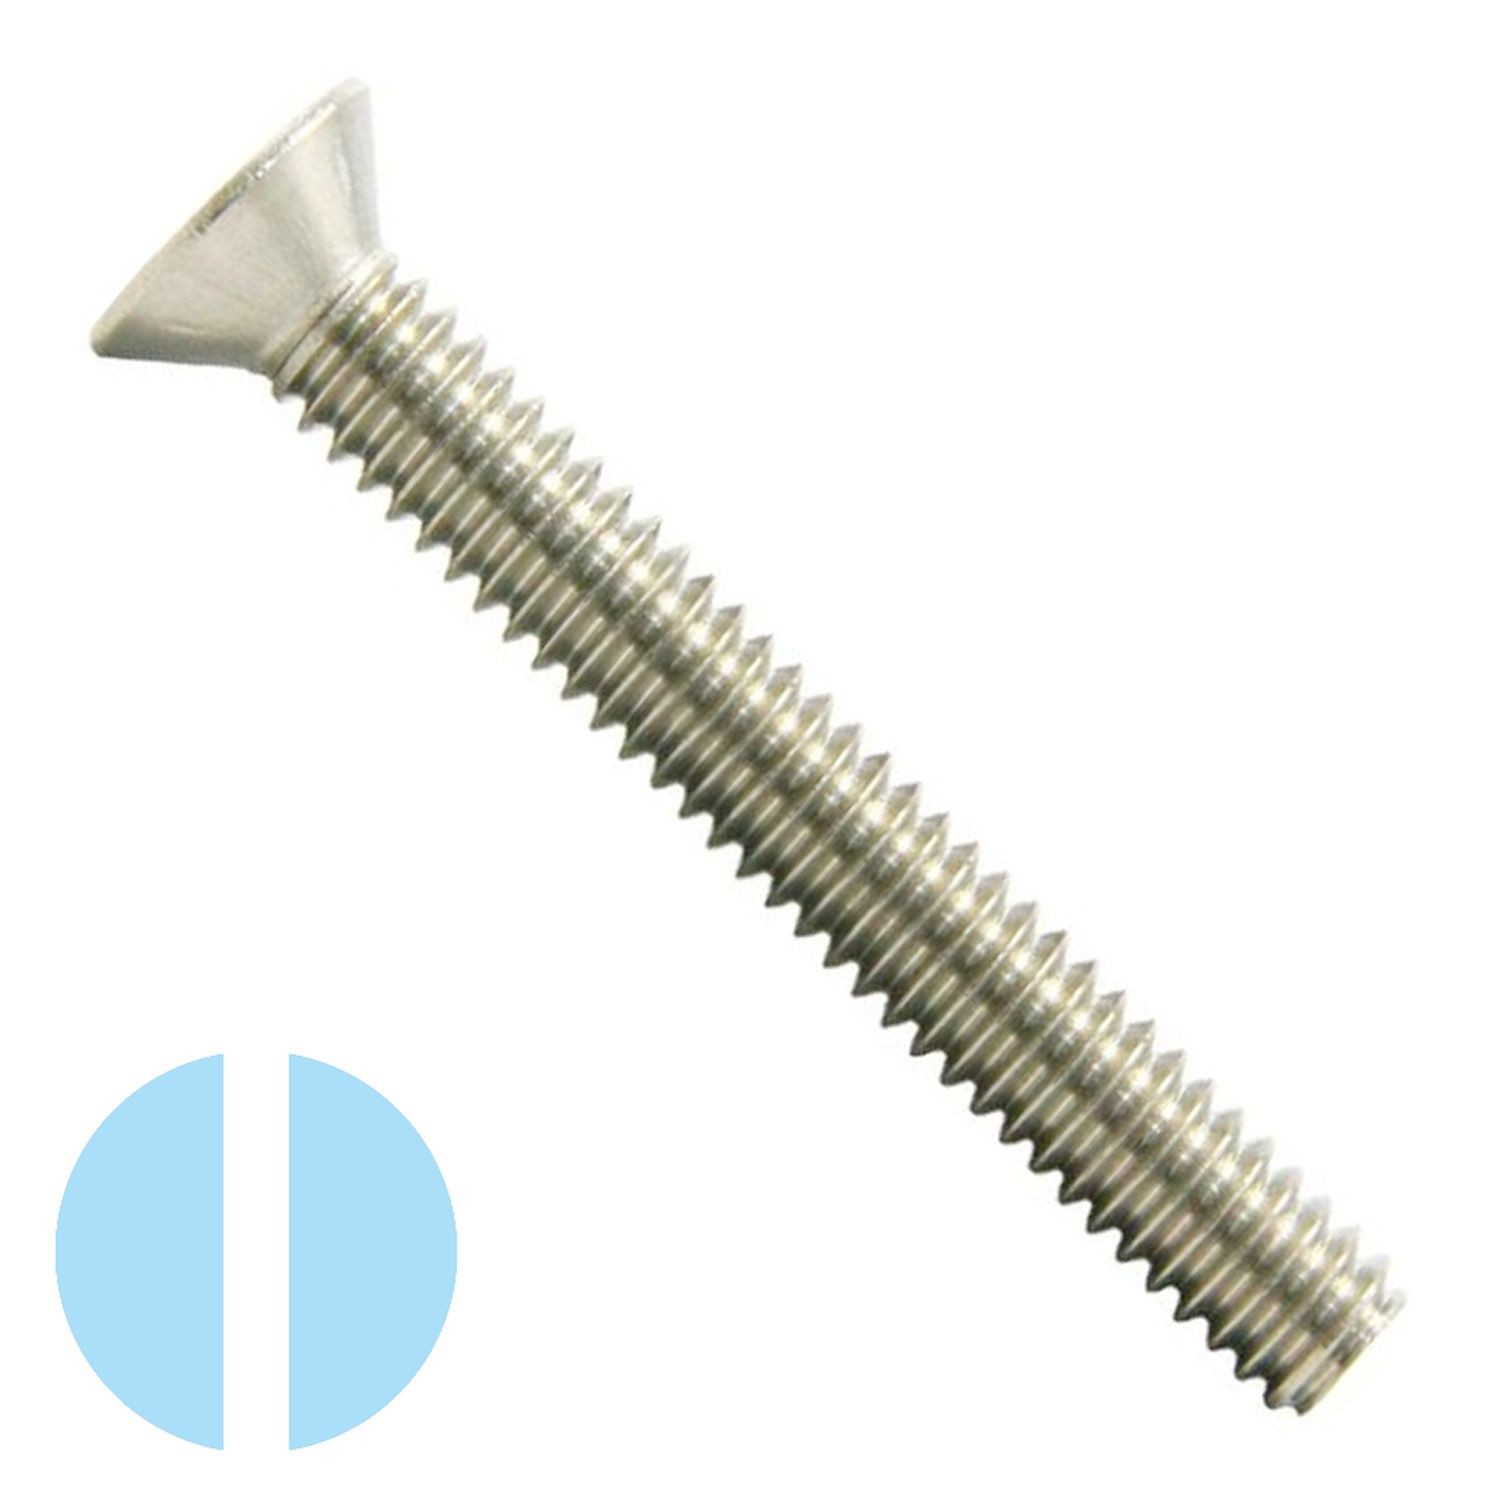 "#10-24 x 1"" Stainless Steel Slotted Flat Head Machine Screw 18-8"